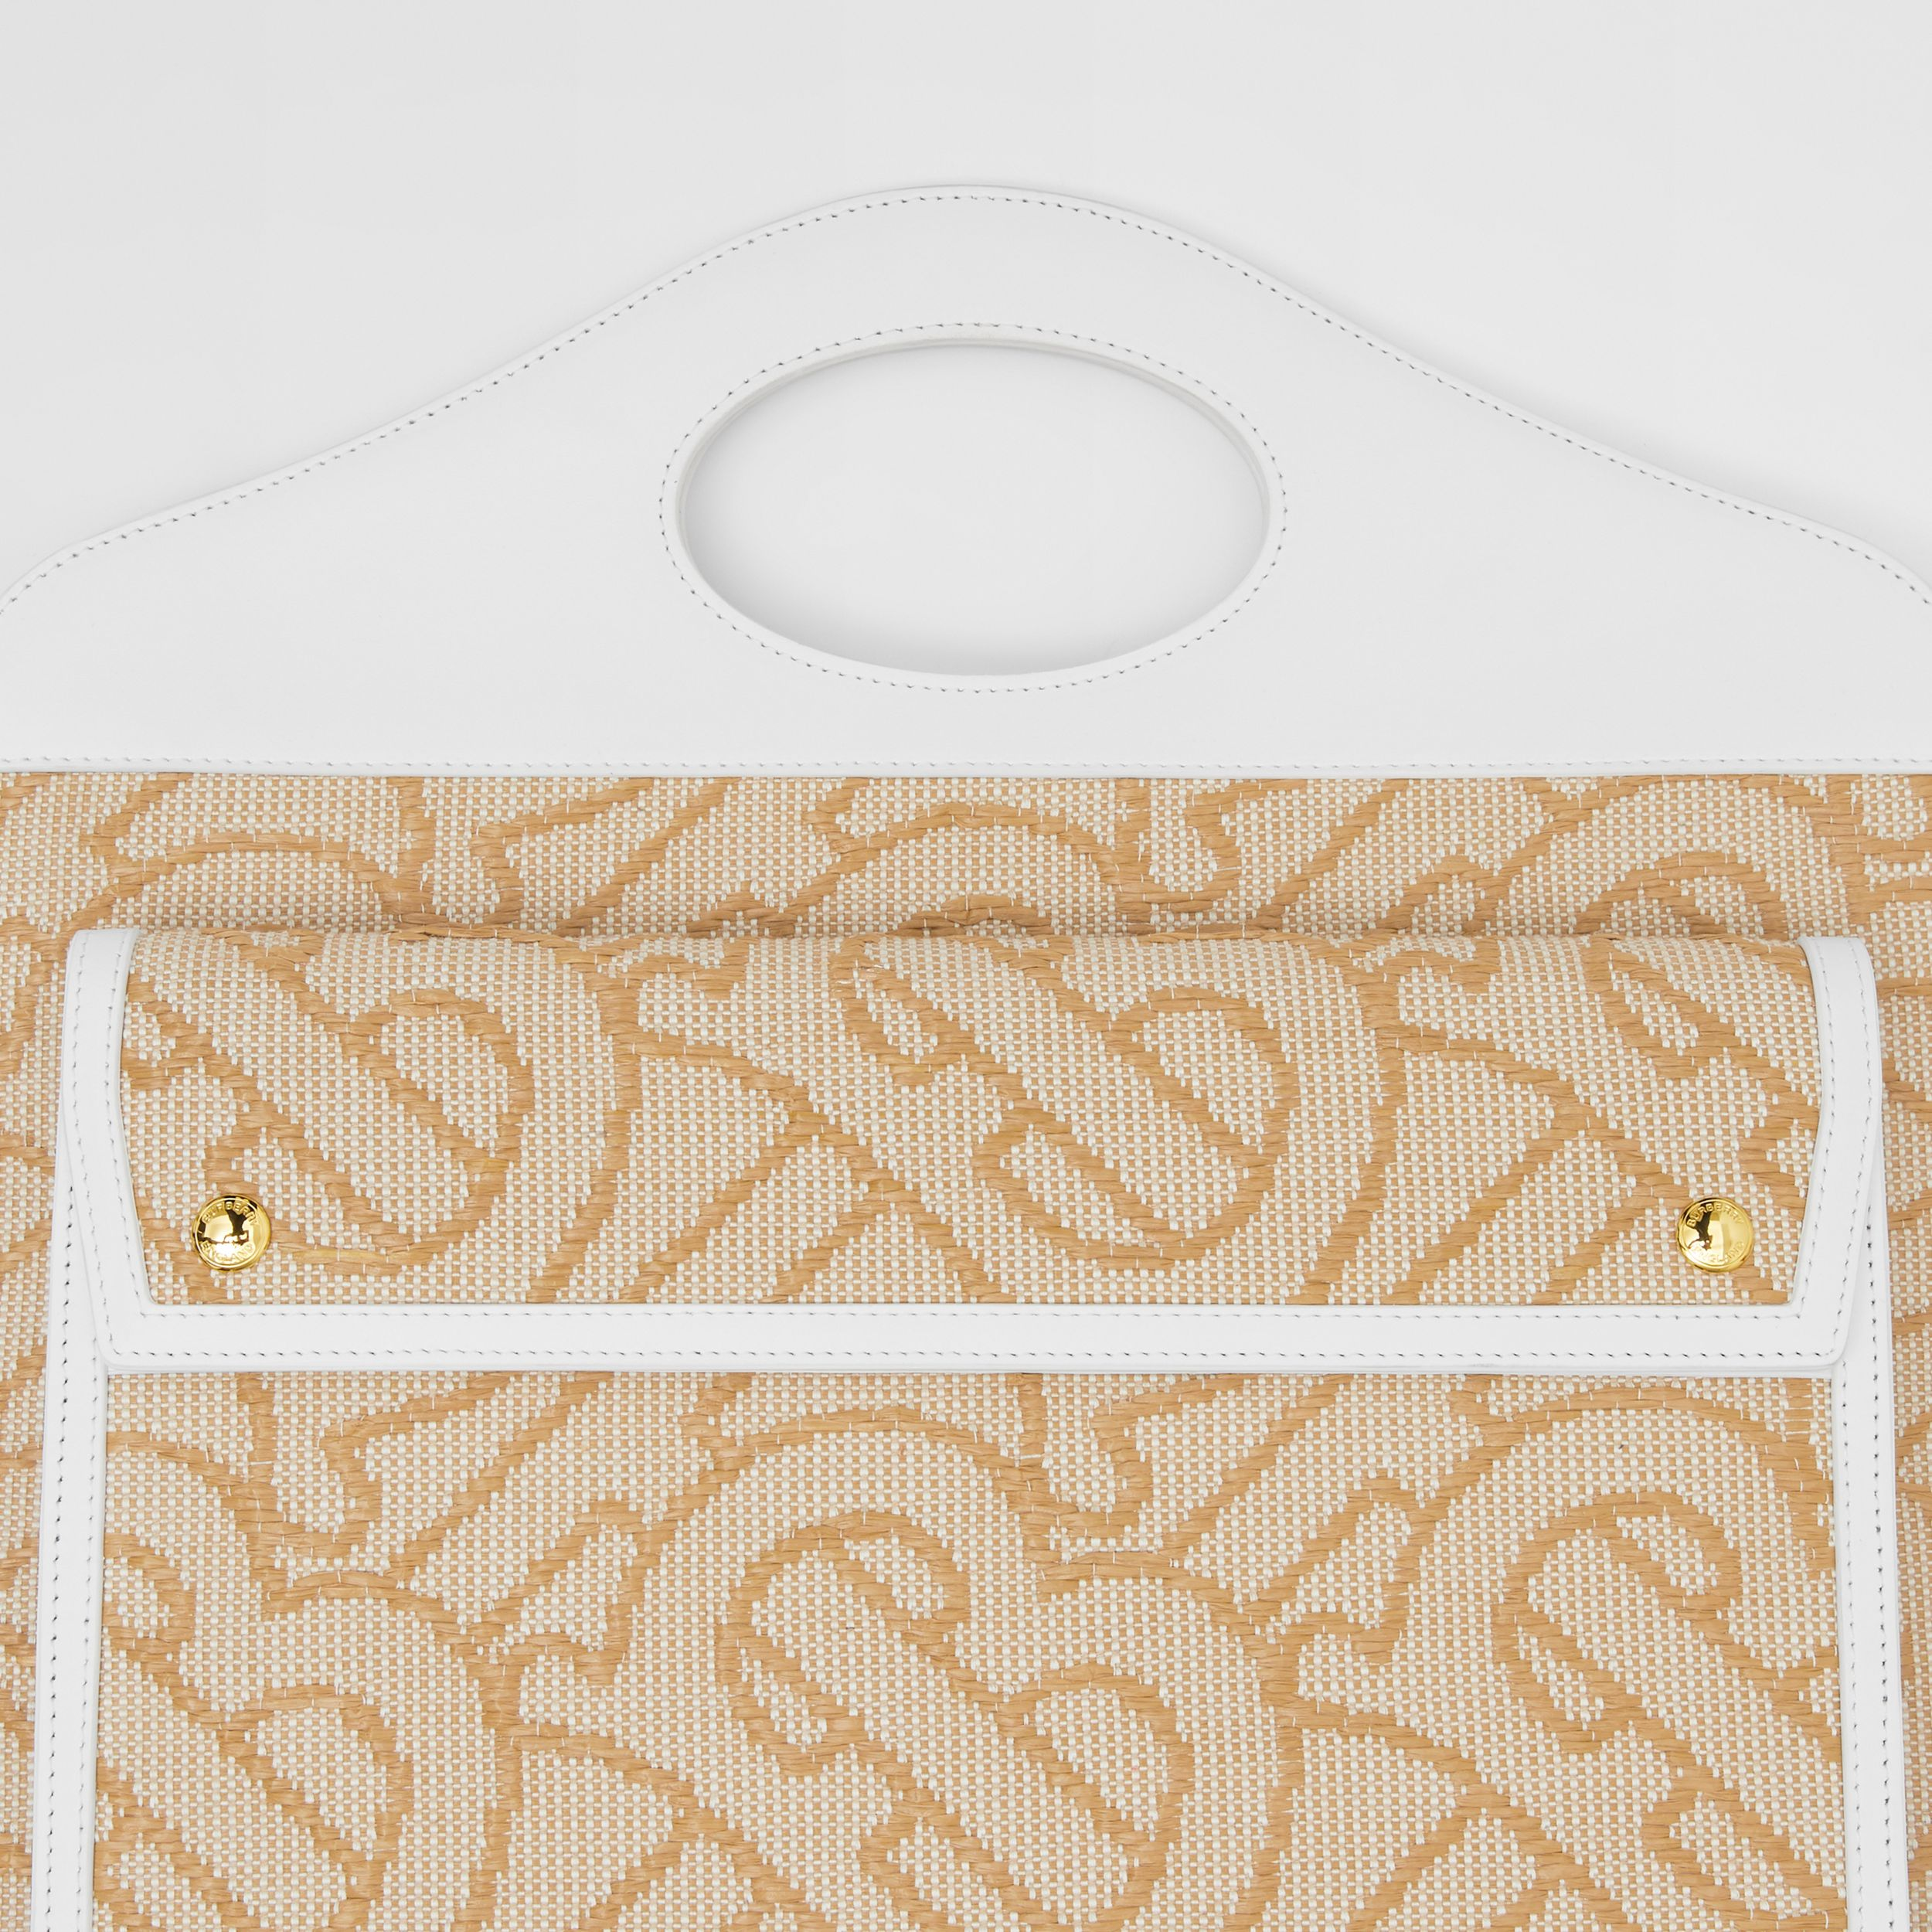 Medium Raffia and Leather Pocket Bag in Natural - Women | Burberry - 2